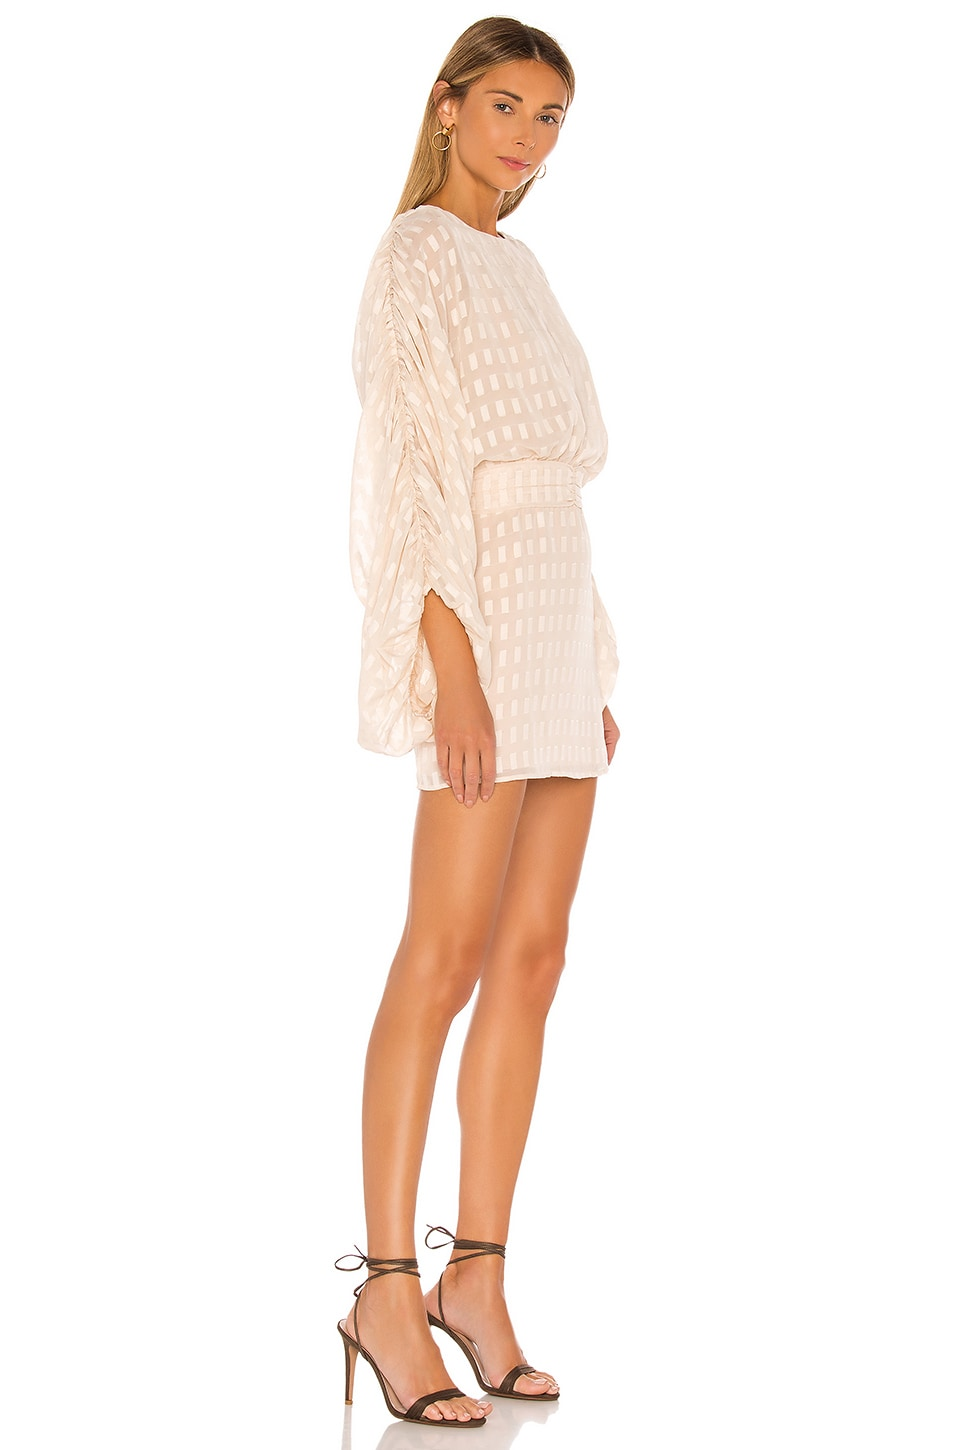 x REVOLVE Nika Dress, view 2, click to view large image.